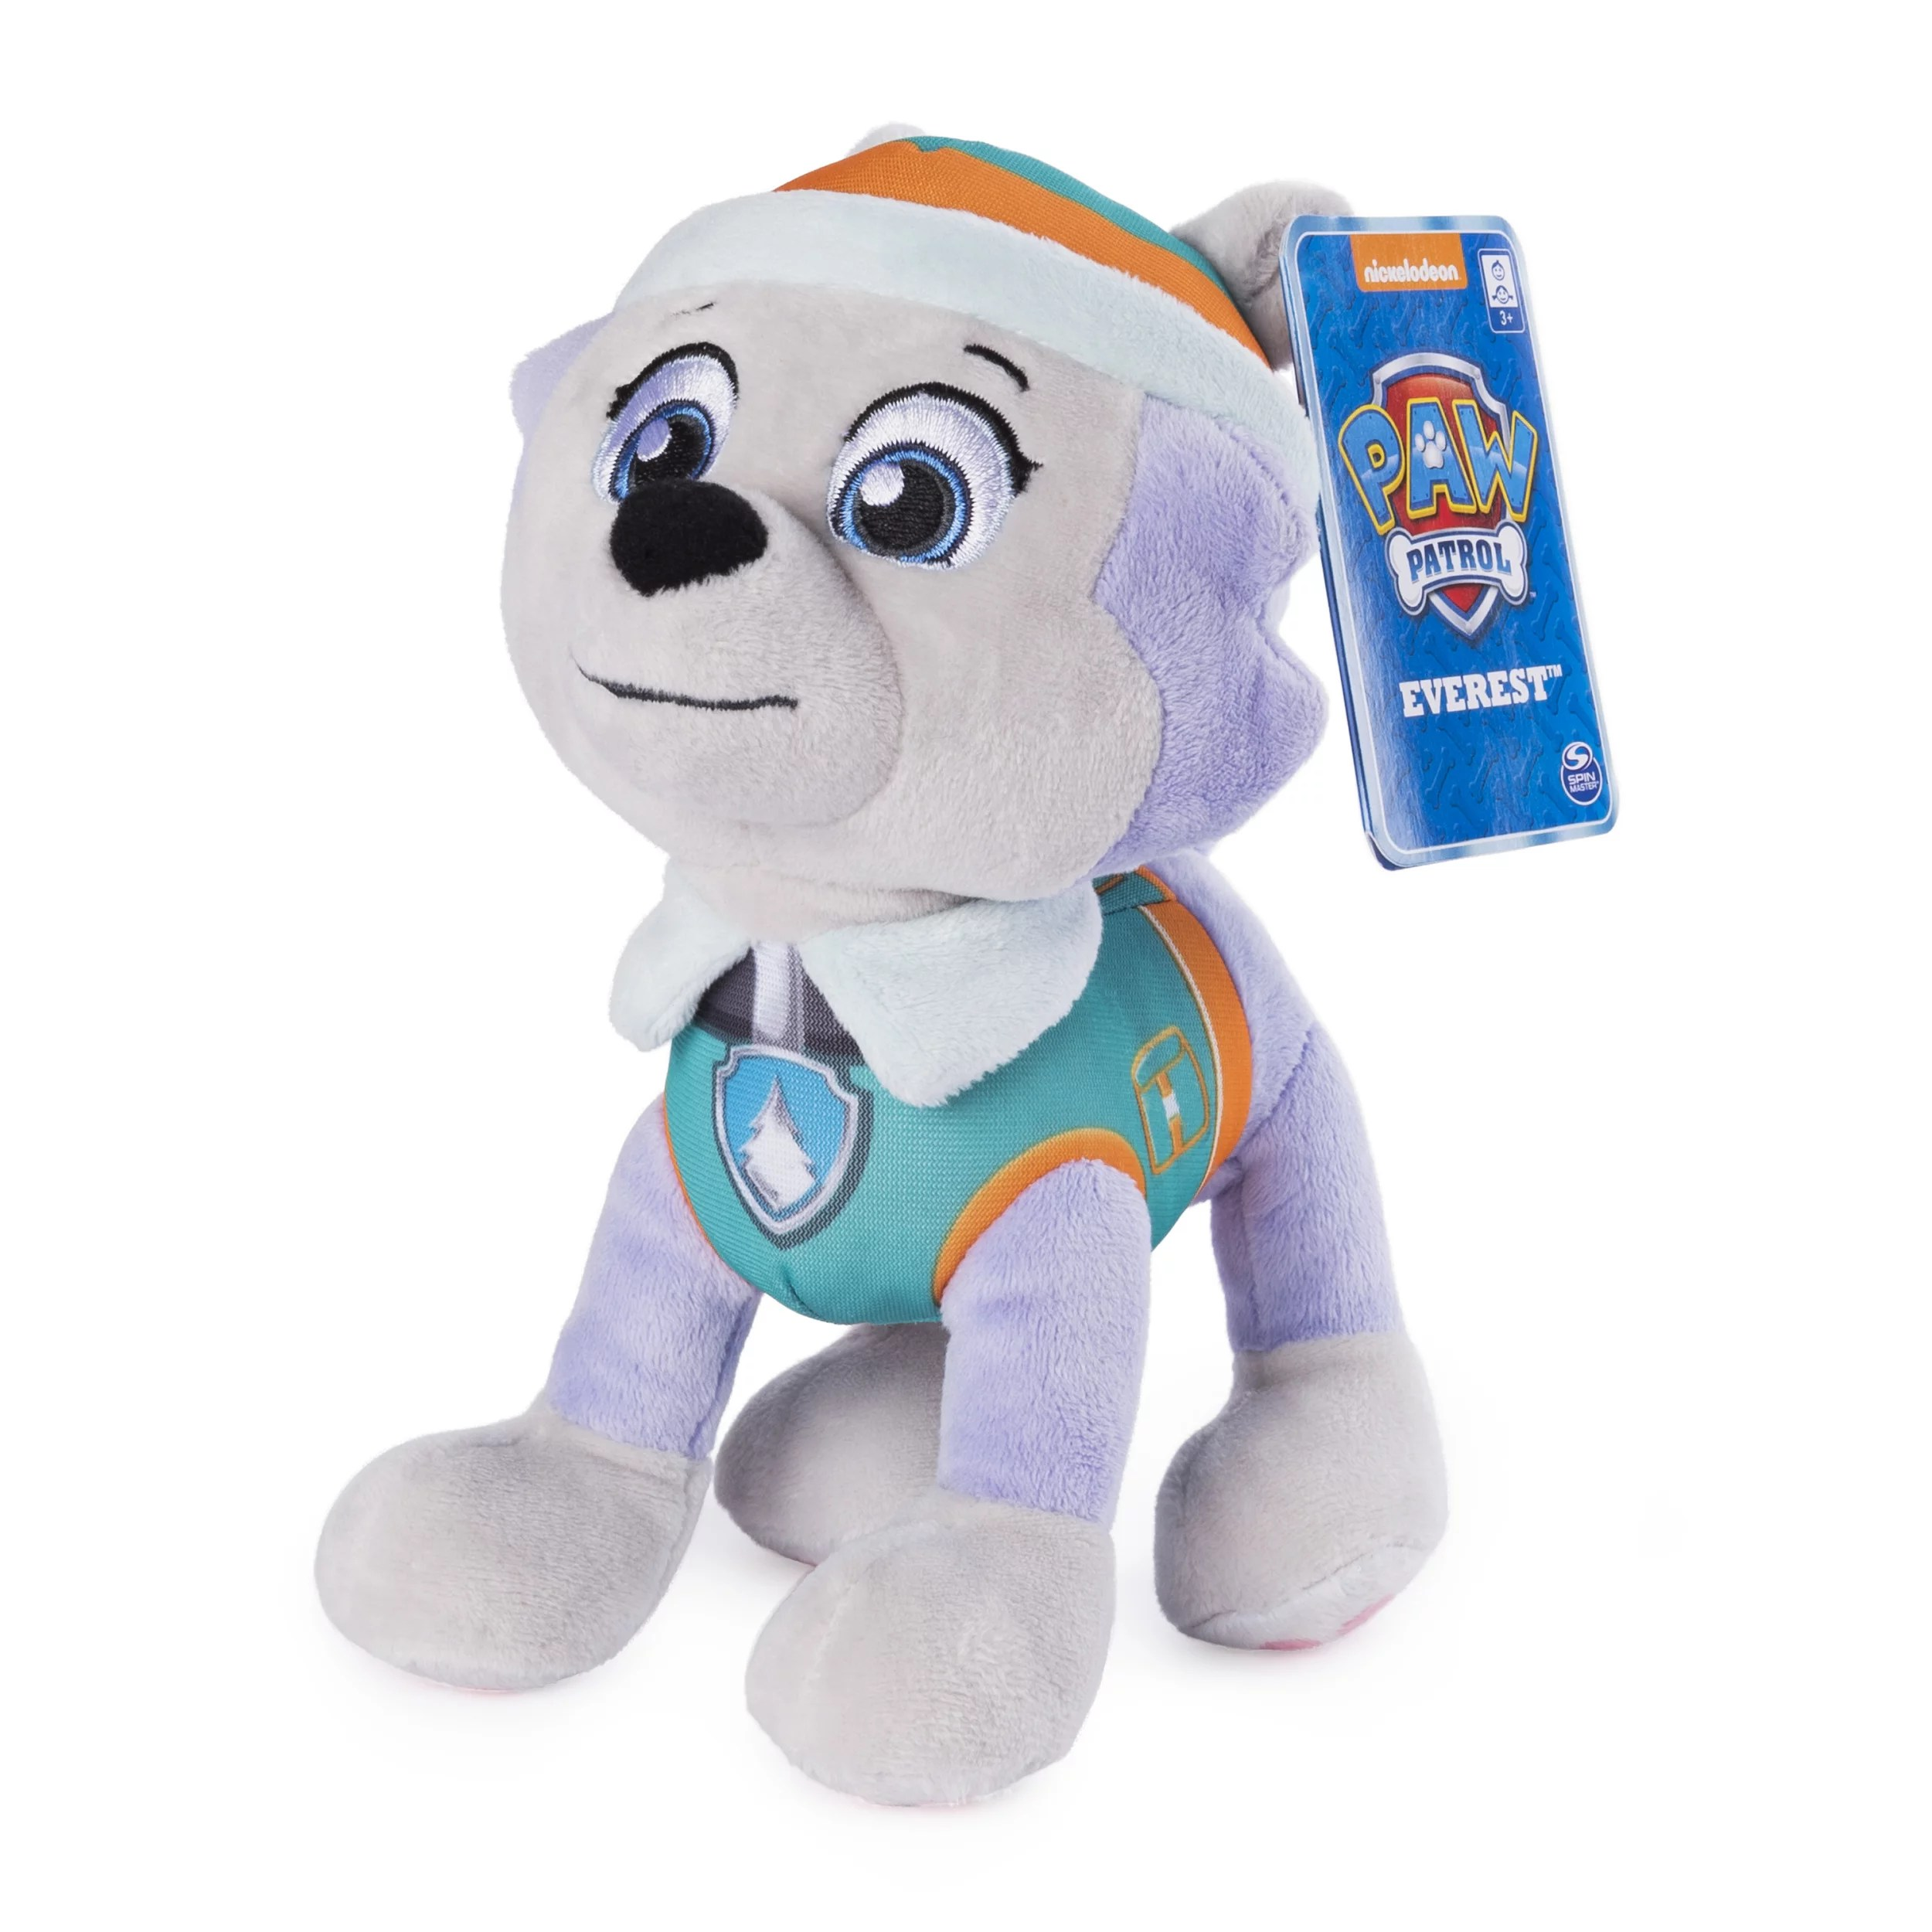 paw patrol 8 inch everest plush toy standing plush with stitched detailing for ages 3 and up walmart com